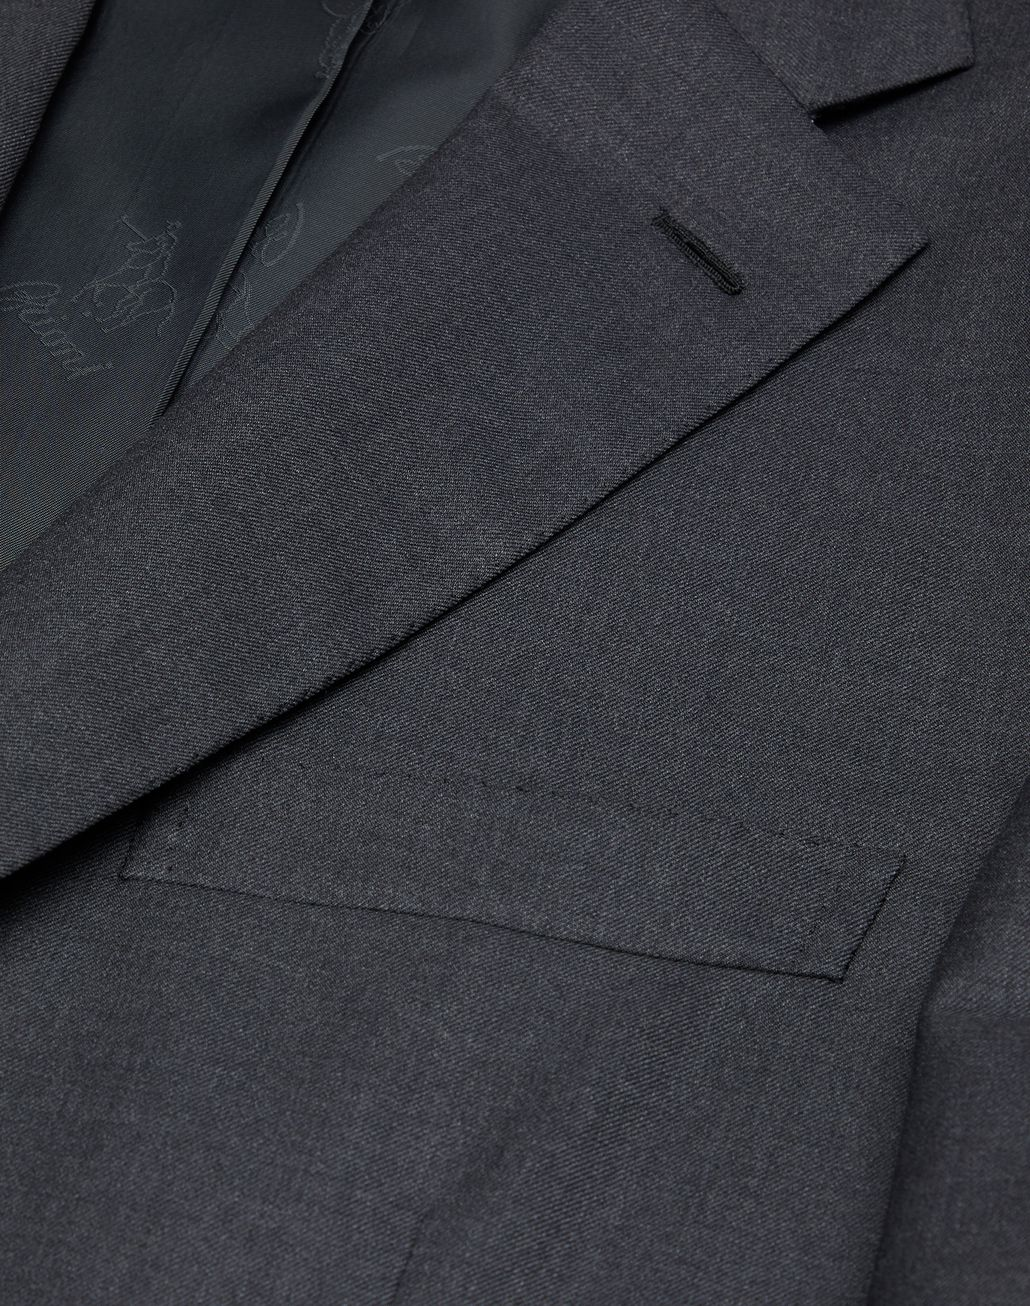 BRIONI Charcoal Brunico Suit Suits & Jackets Man a